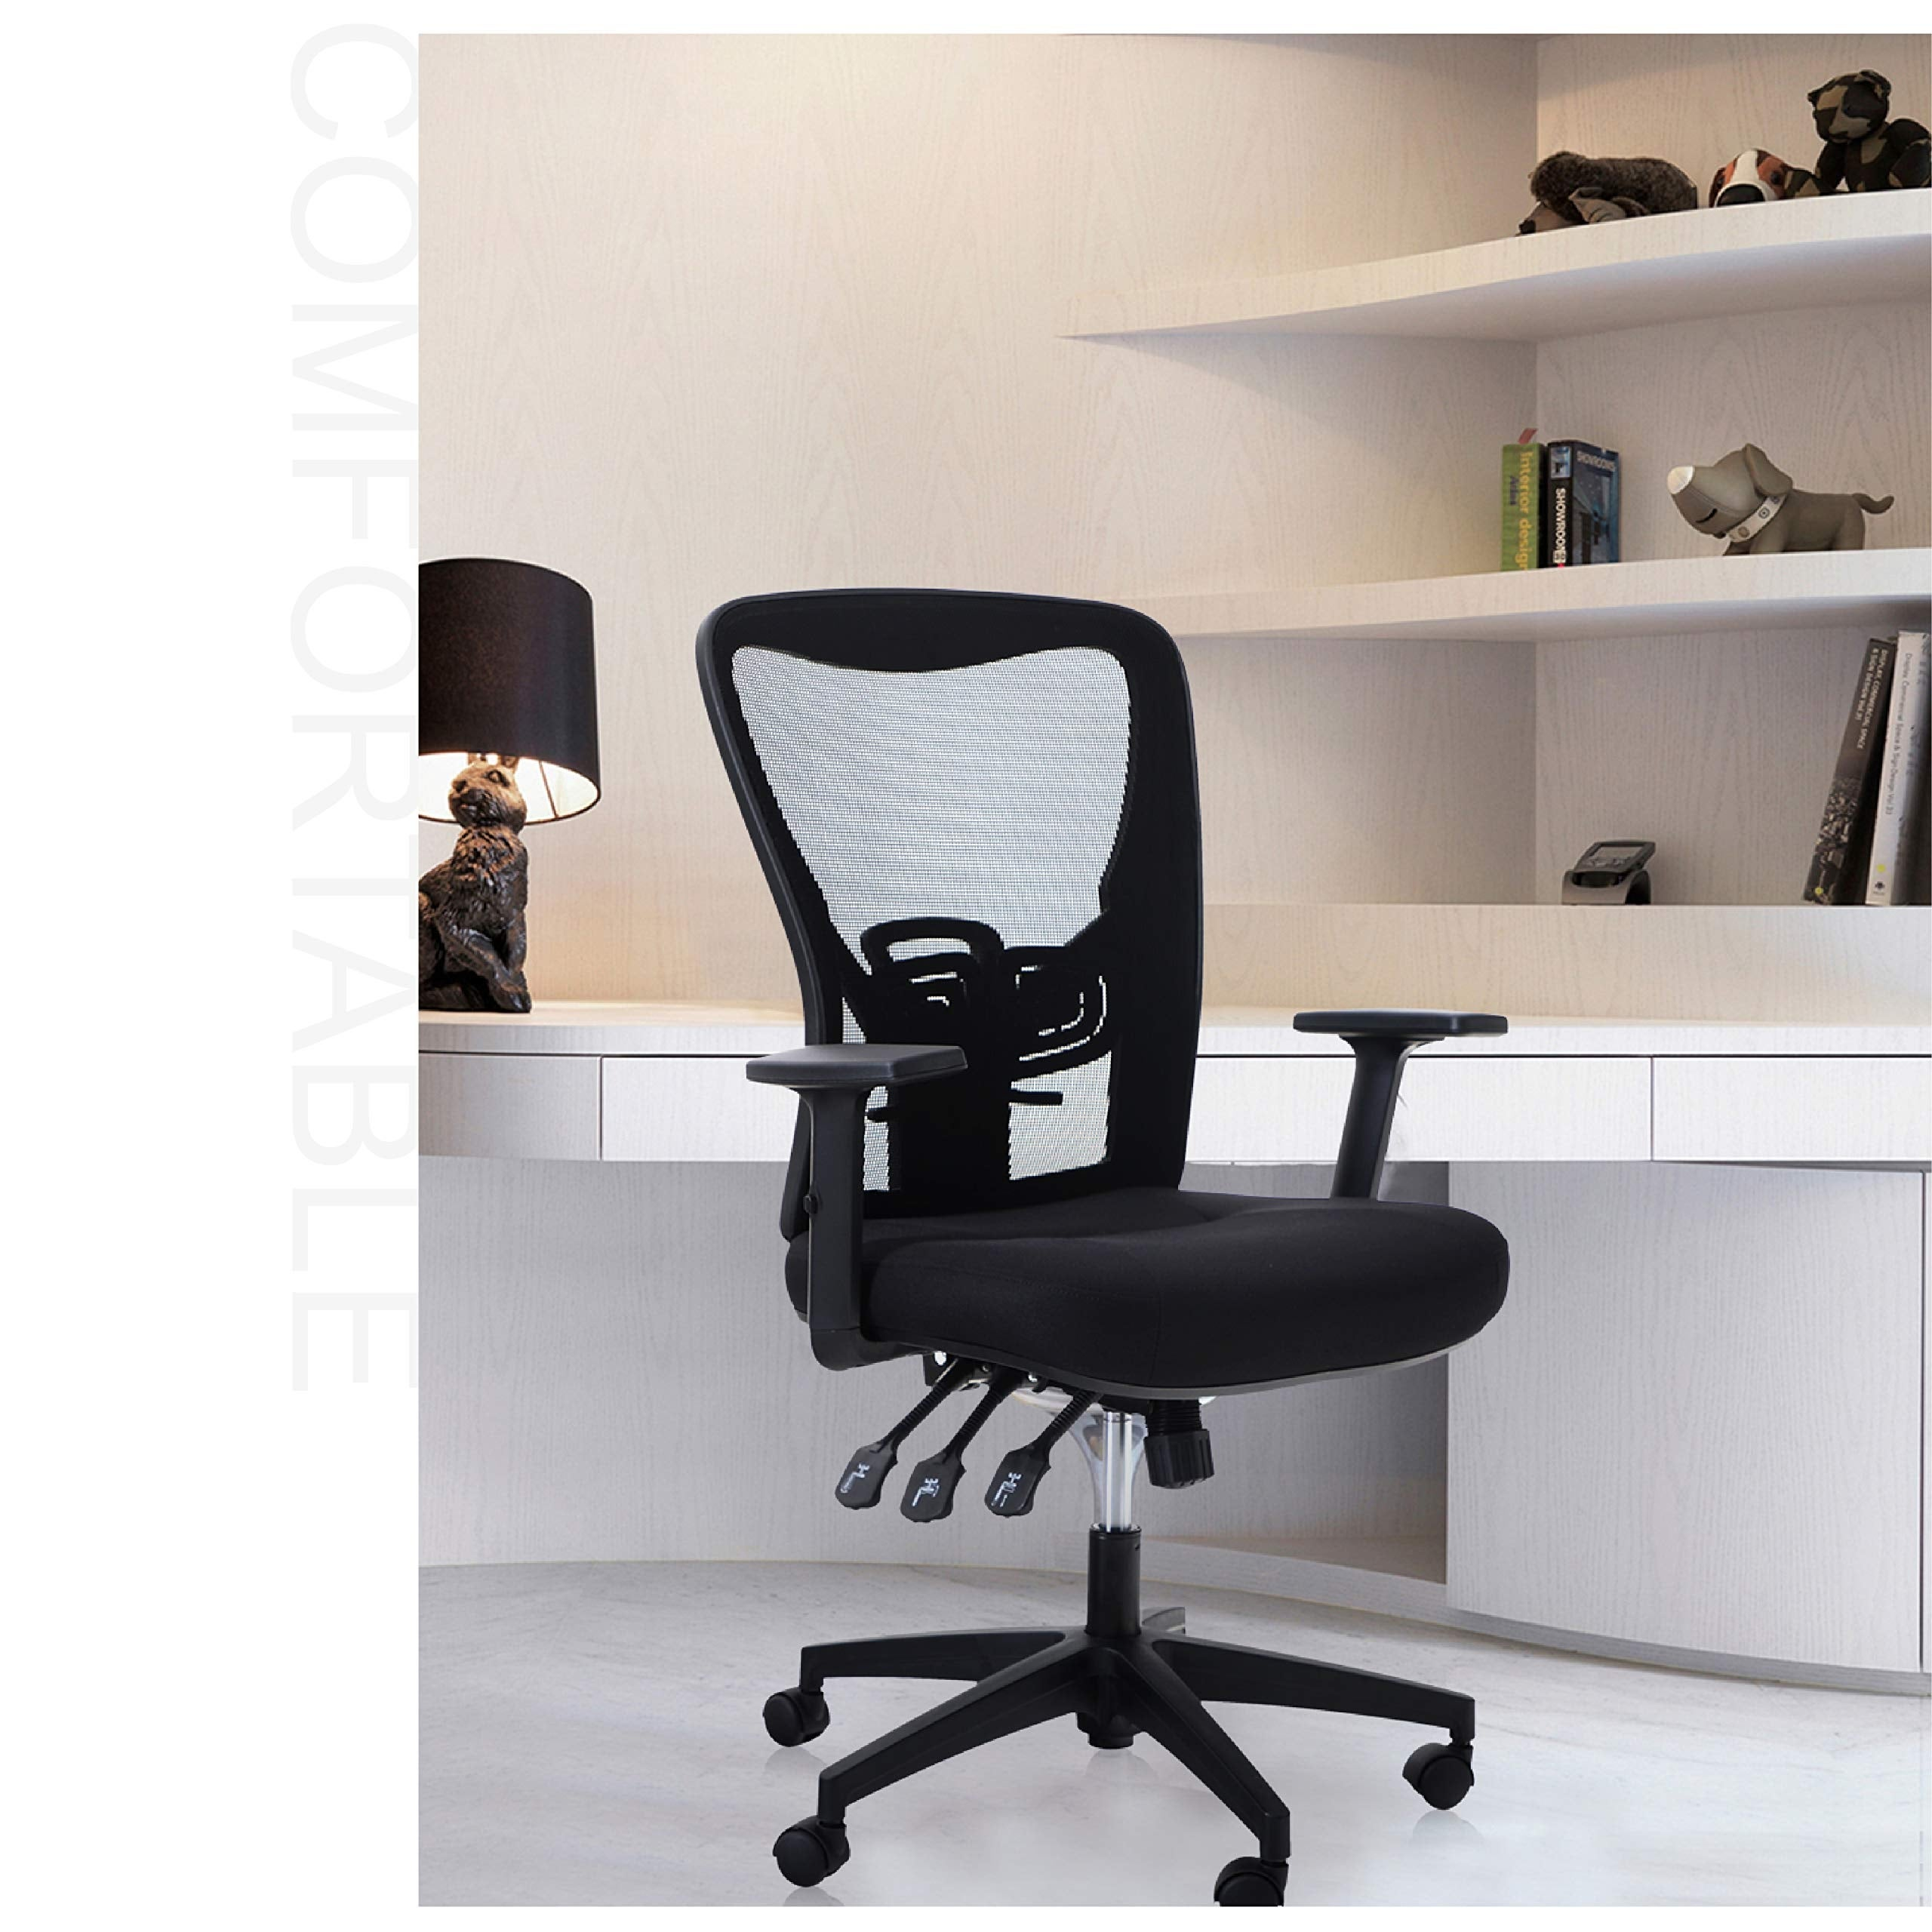 Shop Alpha Home Office Chair Ergonomic Home Desk Chair Mesh With Adjustable Armrest Seat Cushion Rolling Swivel Reclining Chair Overstock 32354075